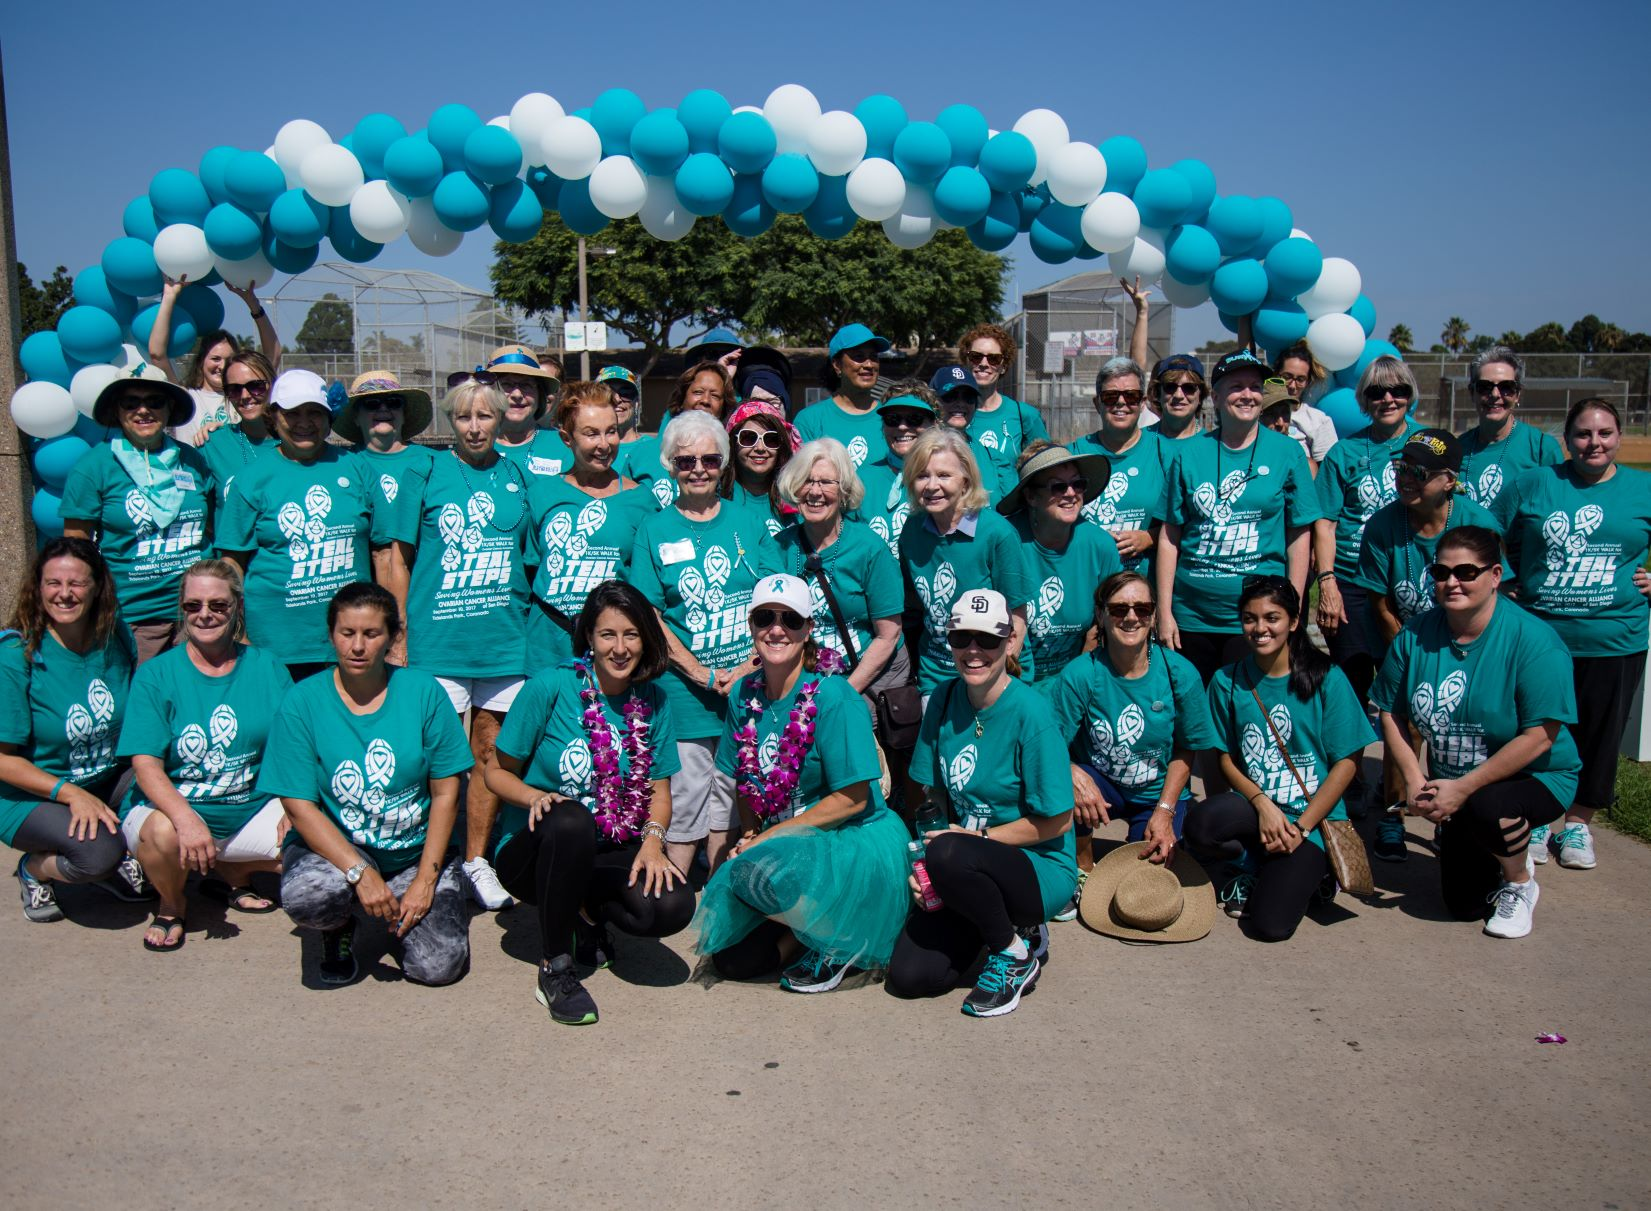 Ovarian Cancer Alliance Of San Diego To Hold 3rd Annual Walk To Raise Awareness For Ovarian Cancer Newswire